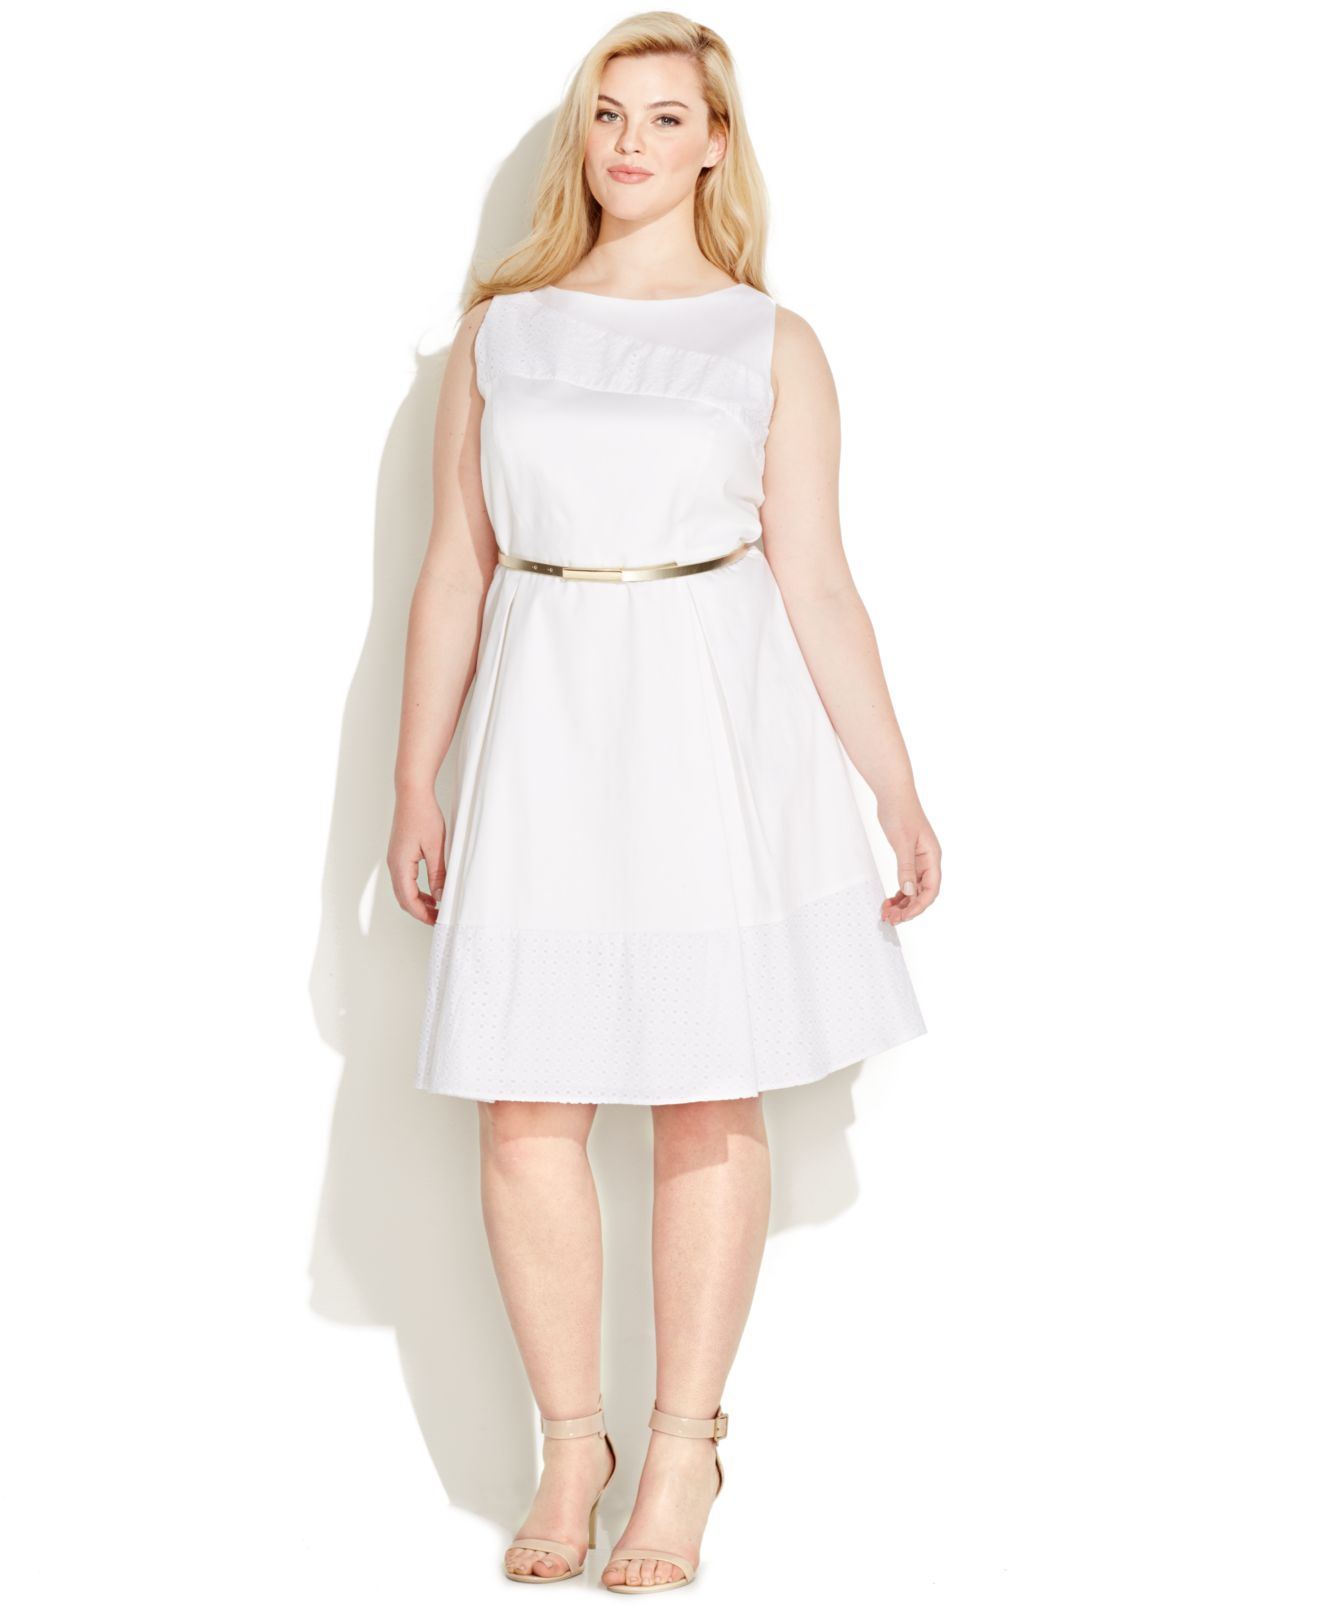 56ac884372e72 Lyst - Calvin Klein Plus Size Eyelet Belted A-line Dress in White